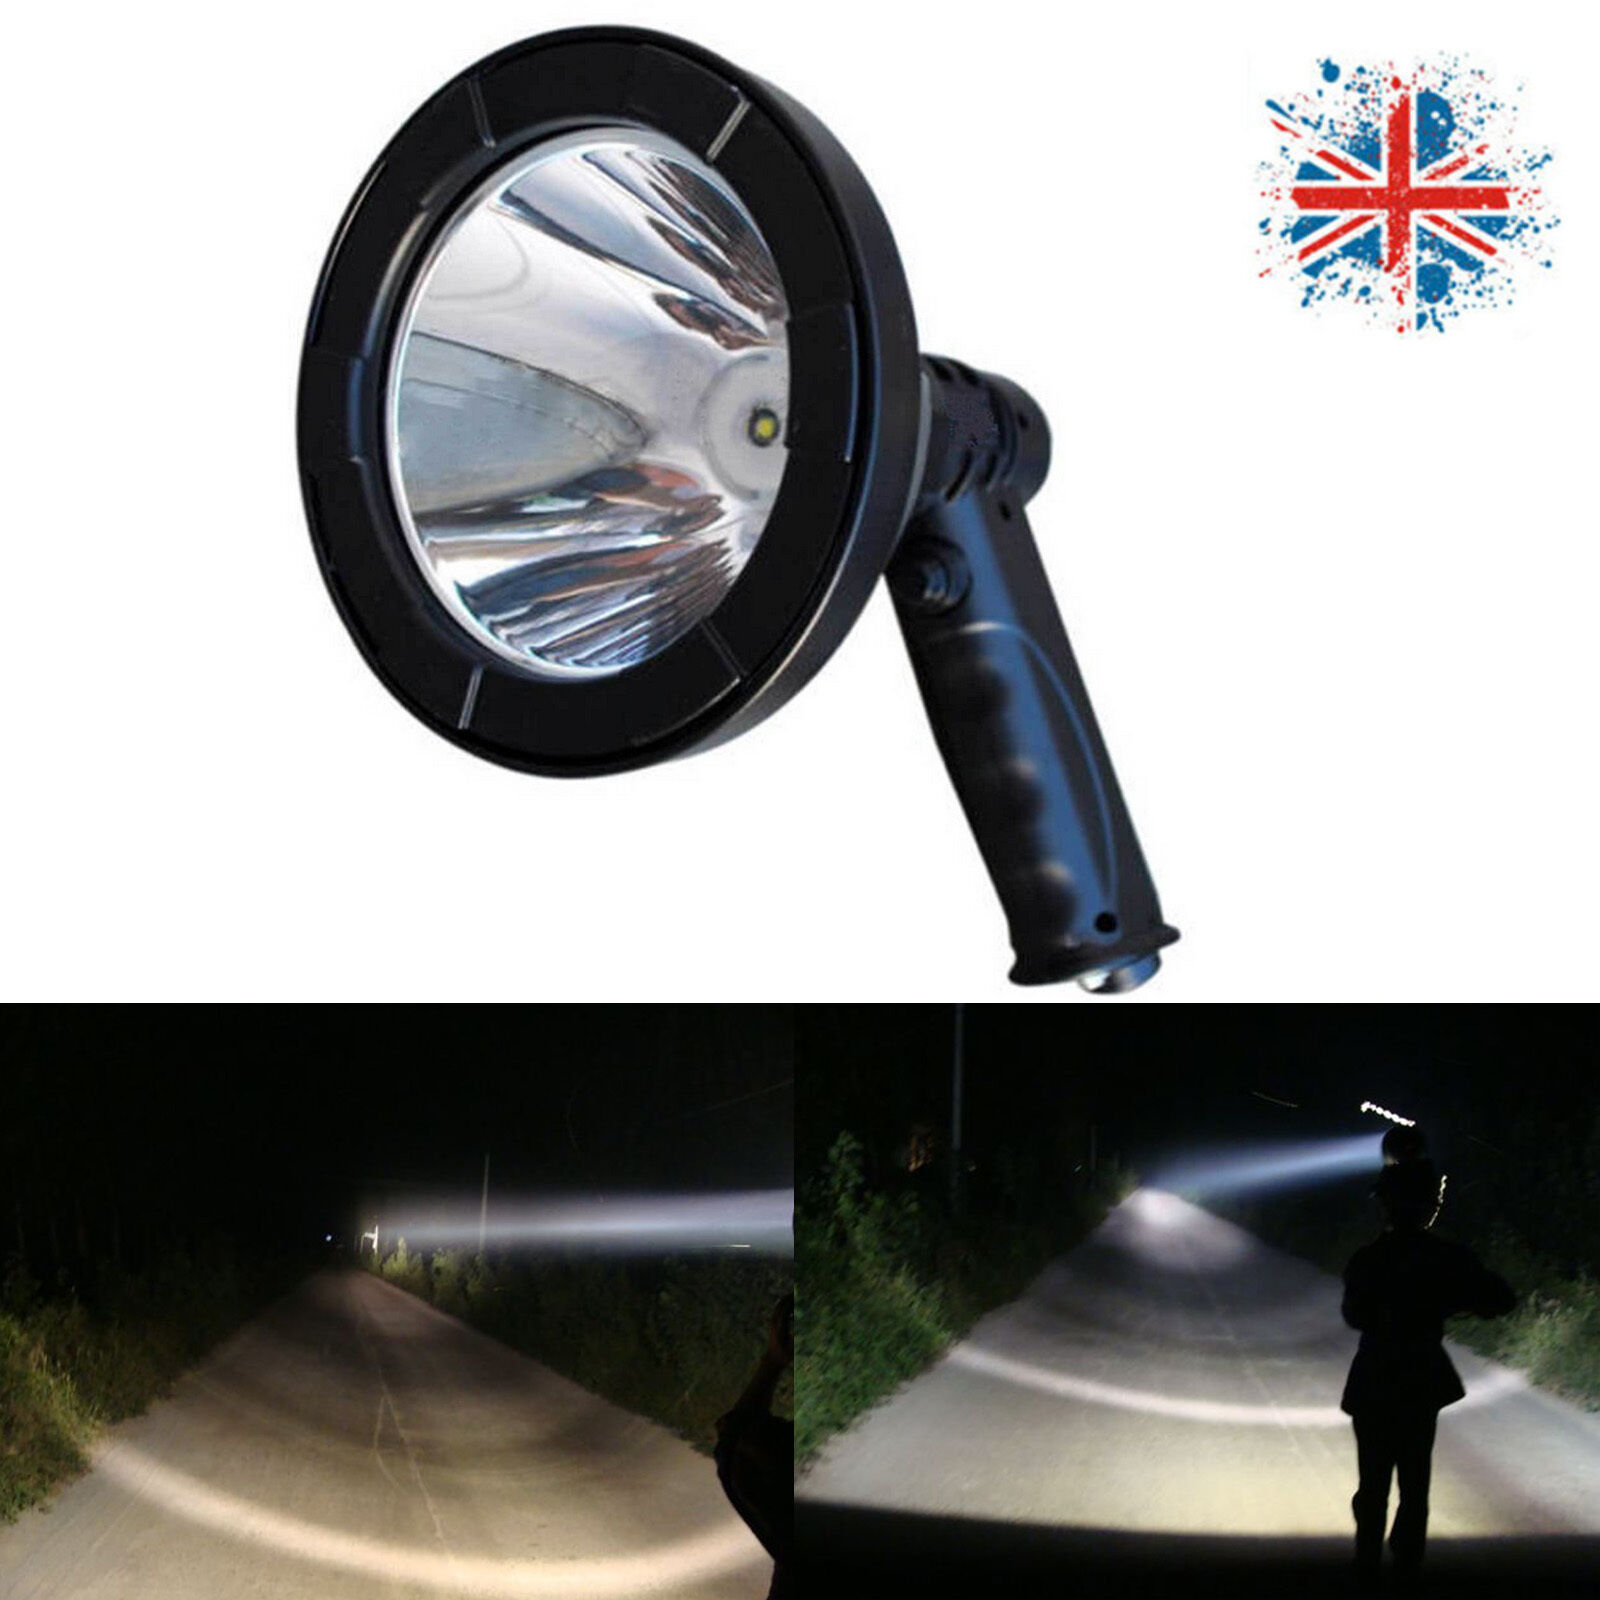 680W T6 LED Handheld Spotlight Fishing Hunting Light High Power+Built-in Battery